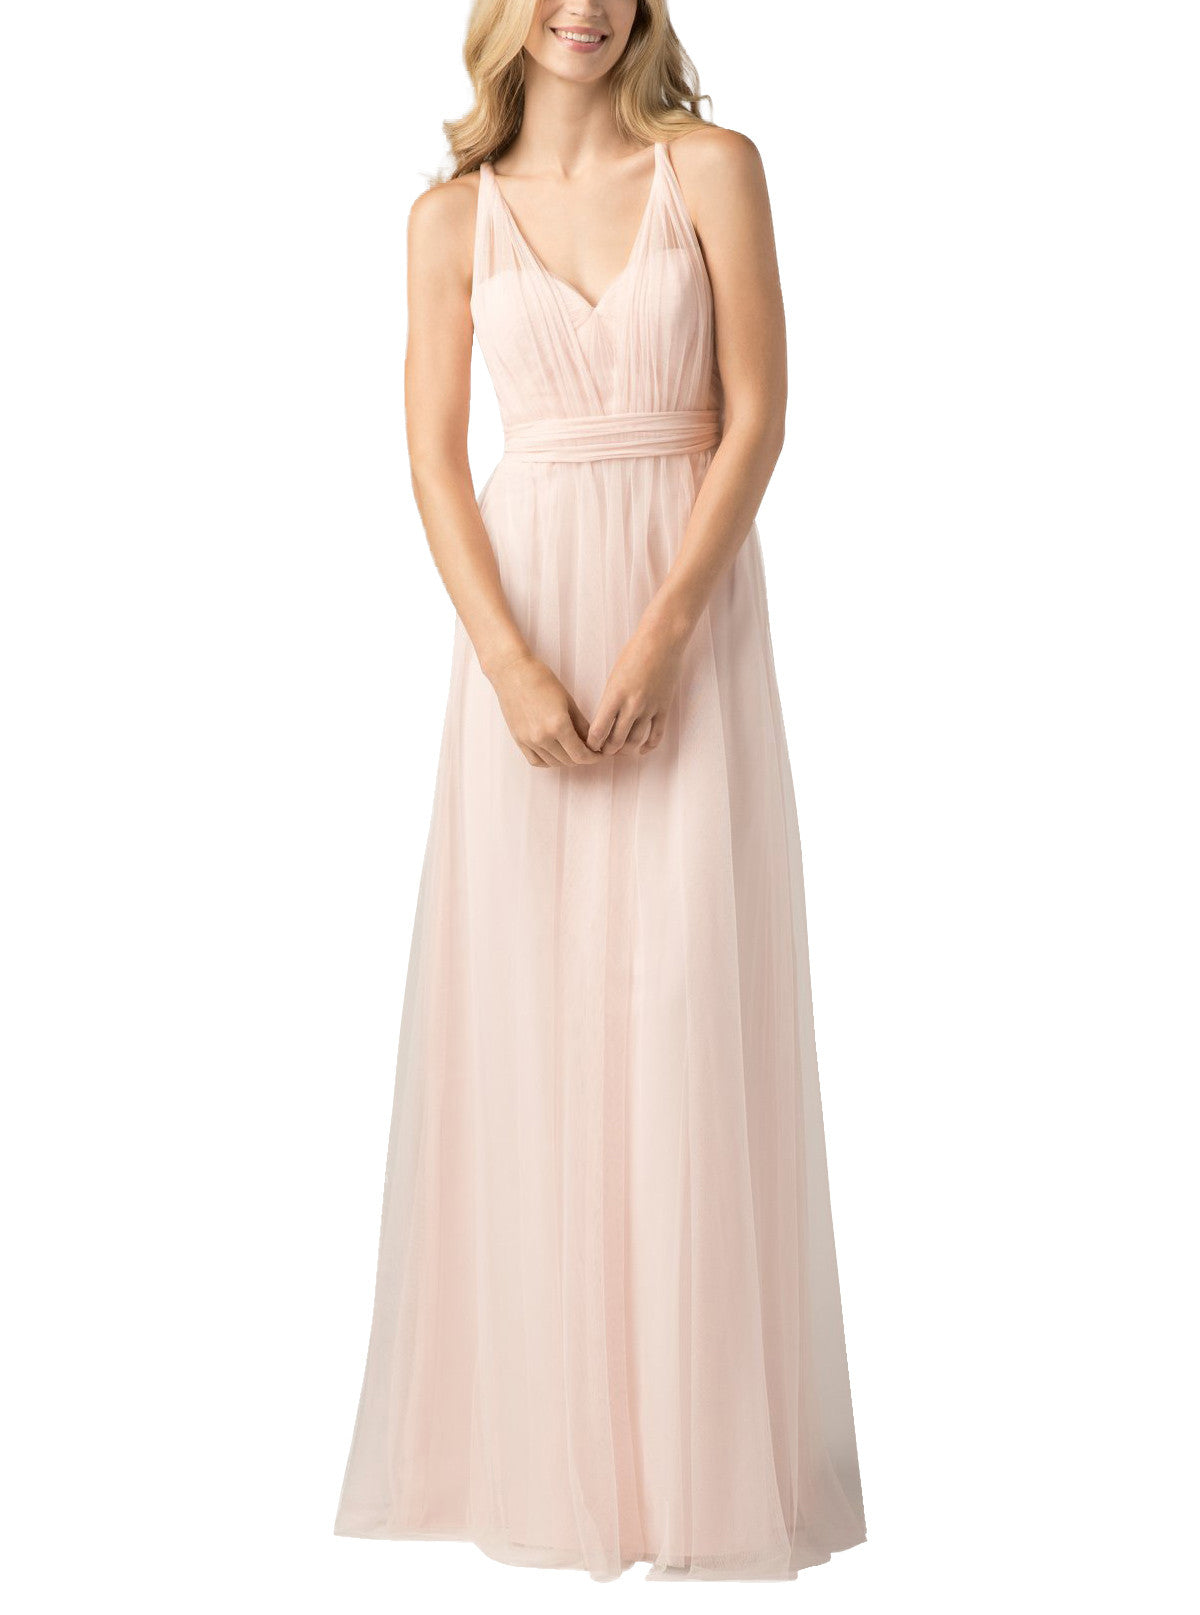 a054e37b9d4d Wtoo by Watters Style 852i Convertible Bridesmaid Dress | Brideside